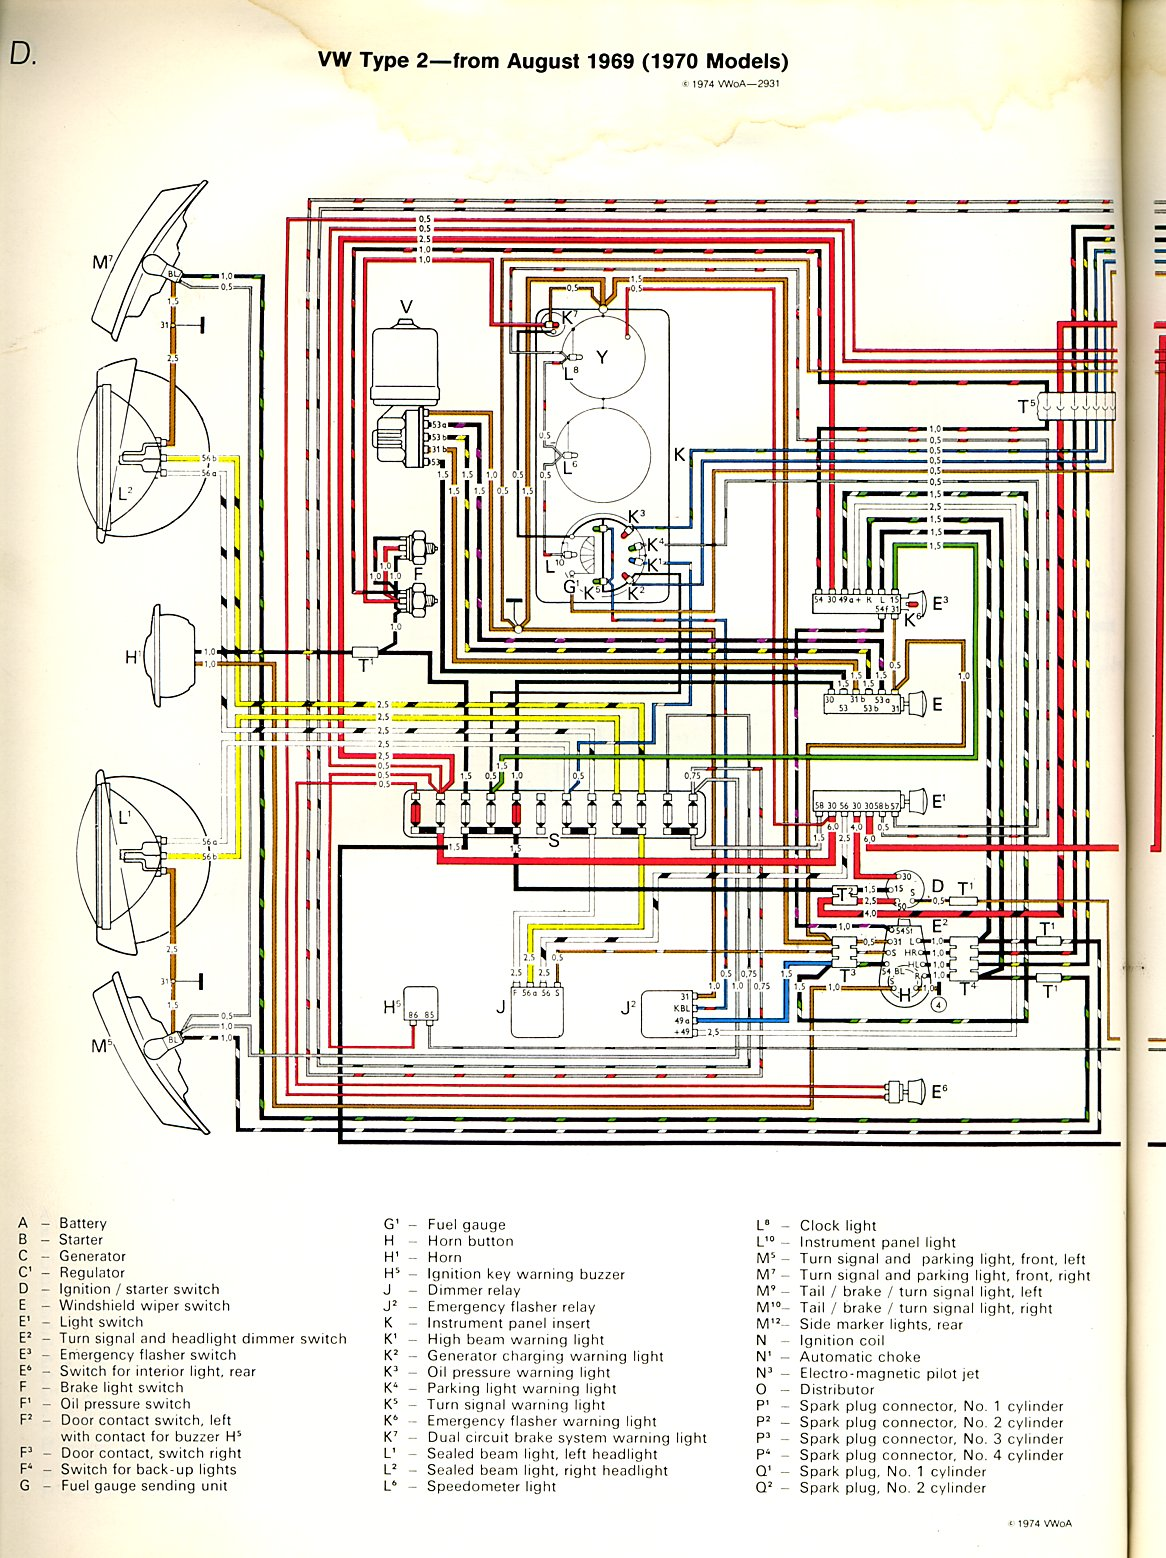 1970 chevelle malibu wiring diagram toyota schematic headlight switch library